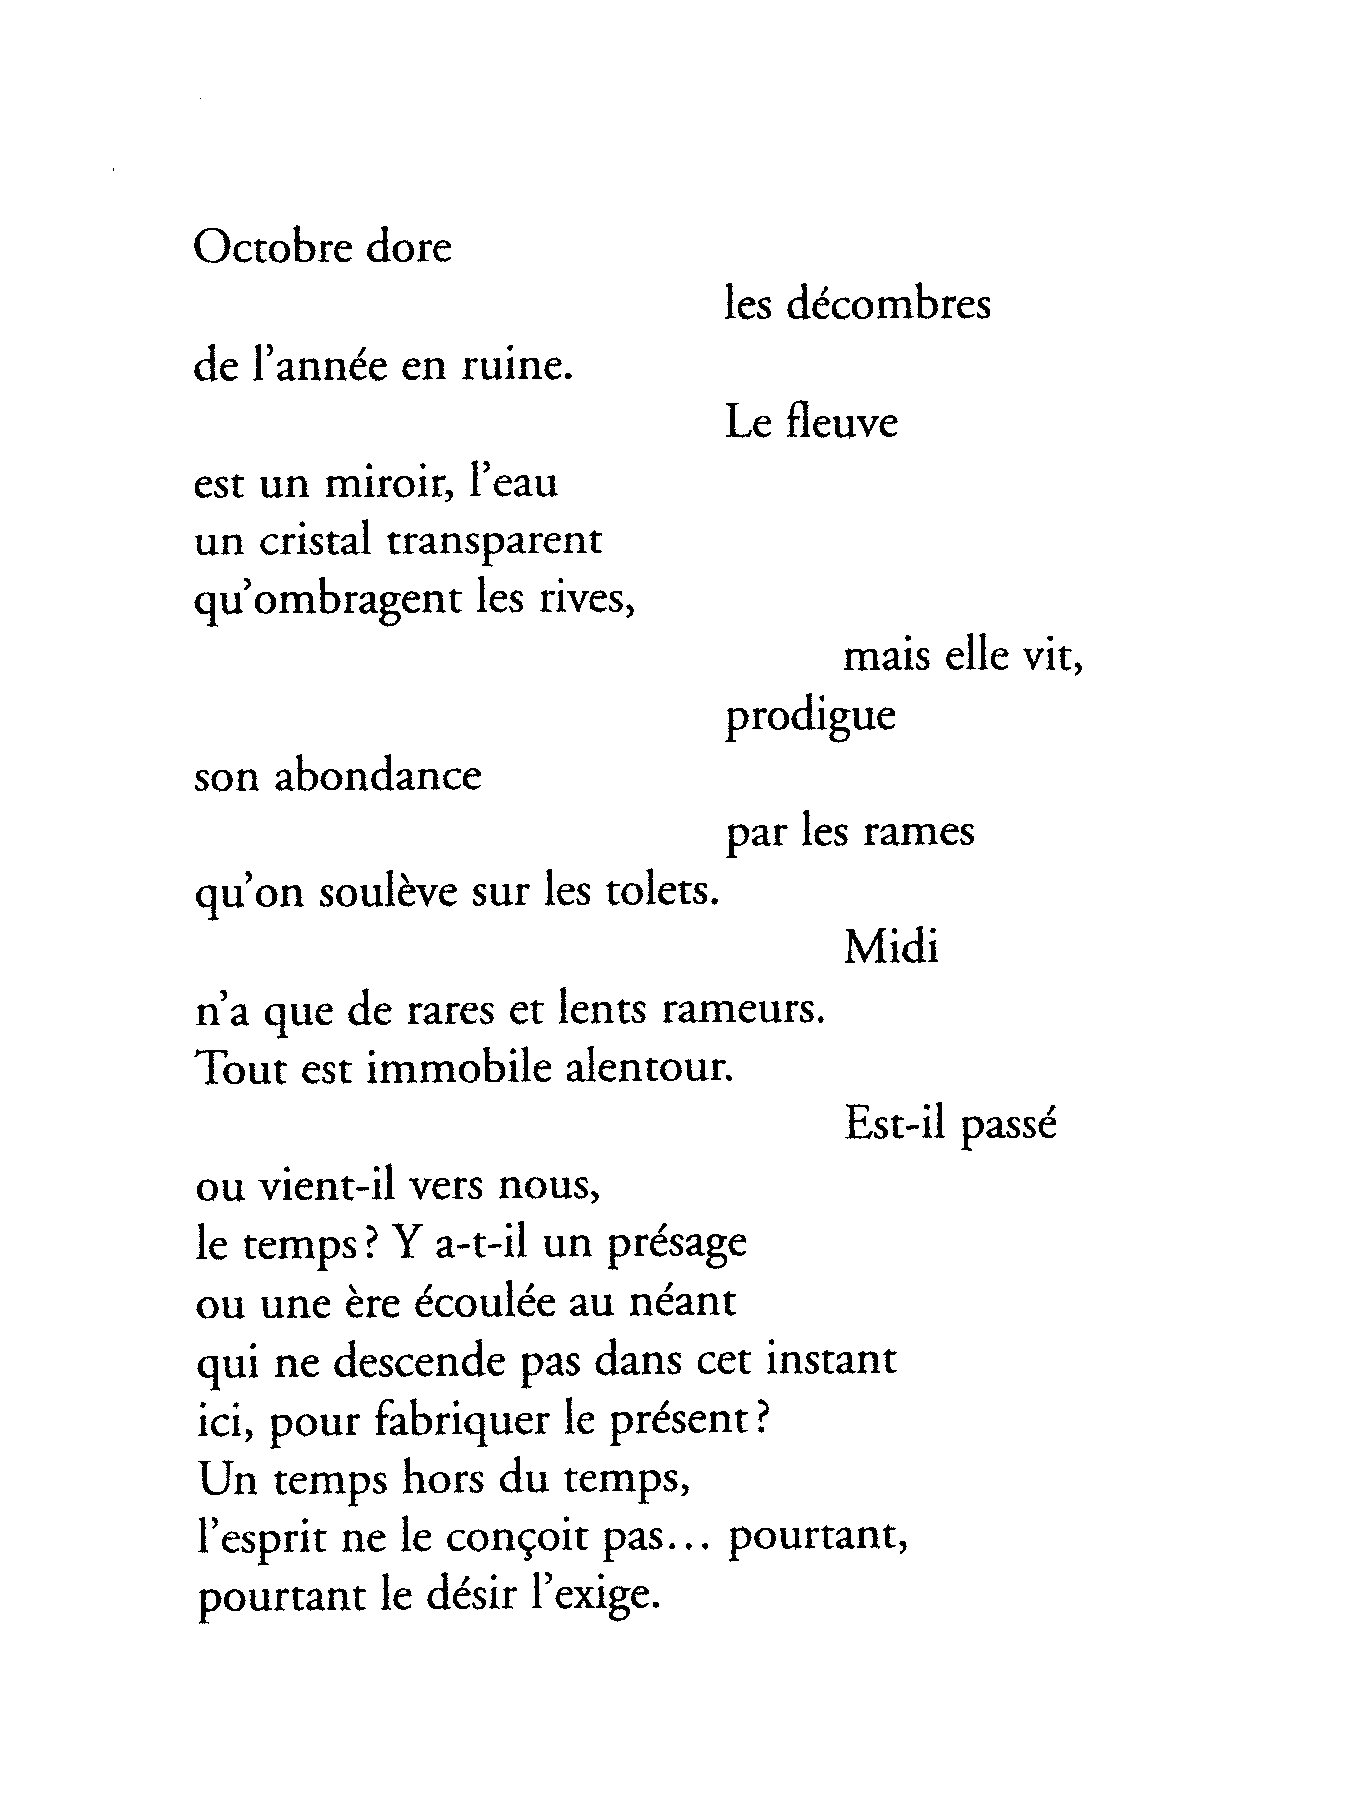 LUZI_STAT_OCTOBRE_DORE_MASSON - copie